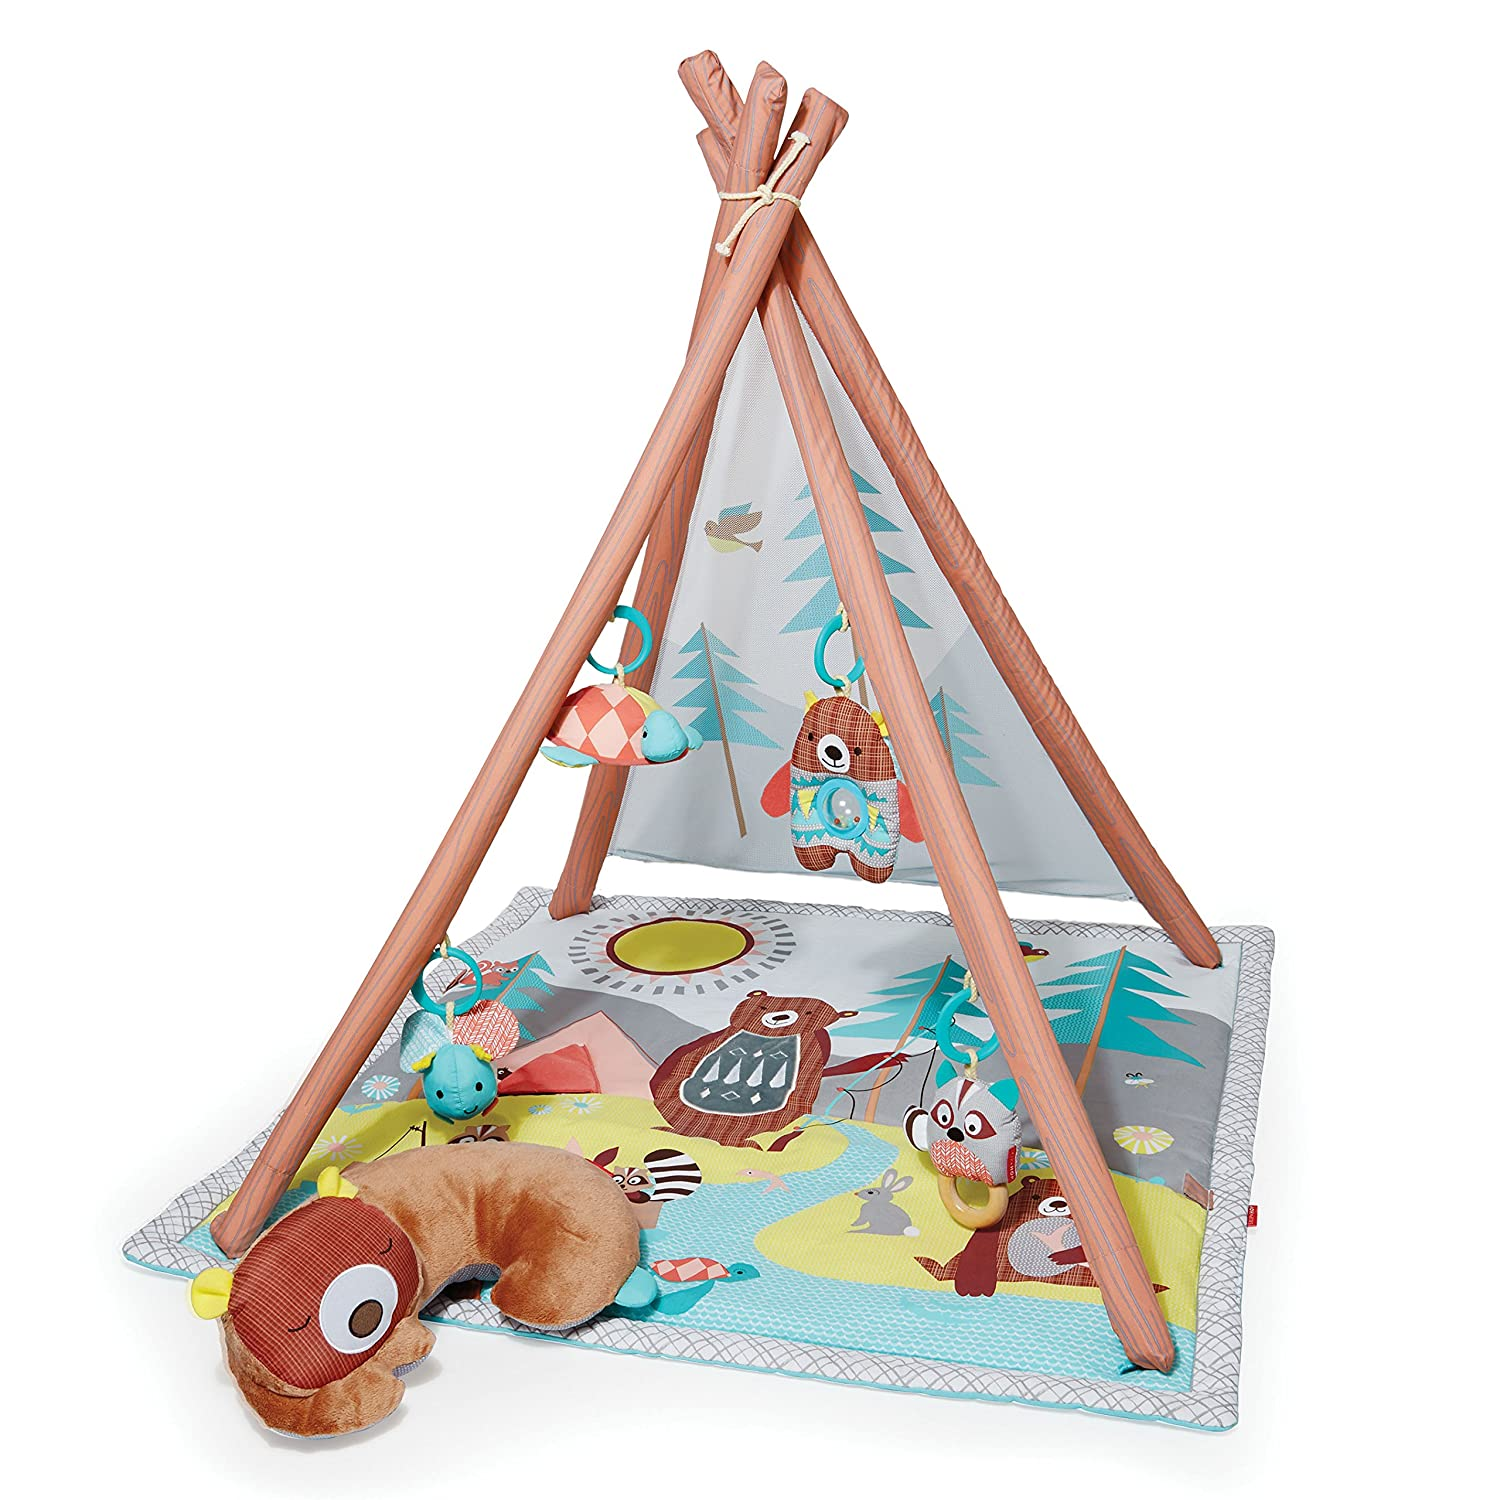 Skip Hop Baby Infant and Toddler Camping Cubs Activity Gym and Playmat, Multi 307900-CNSZP